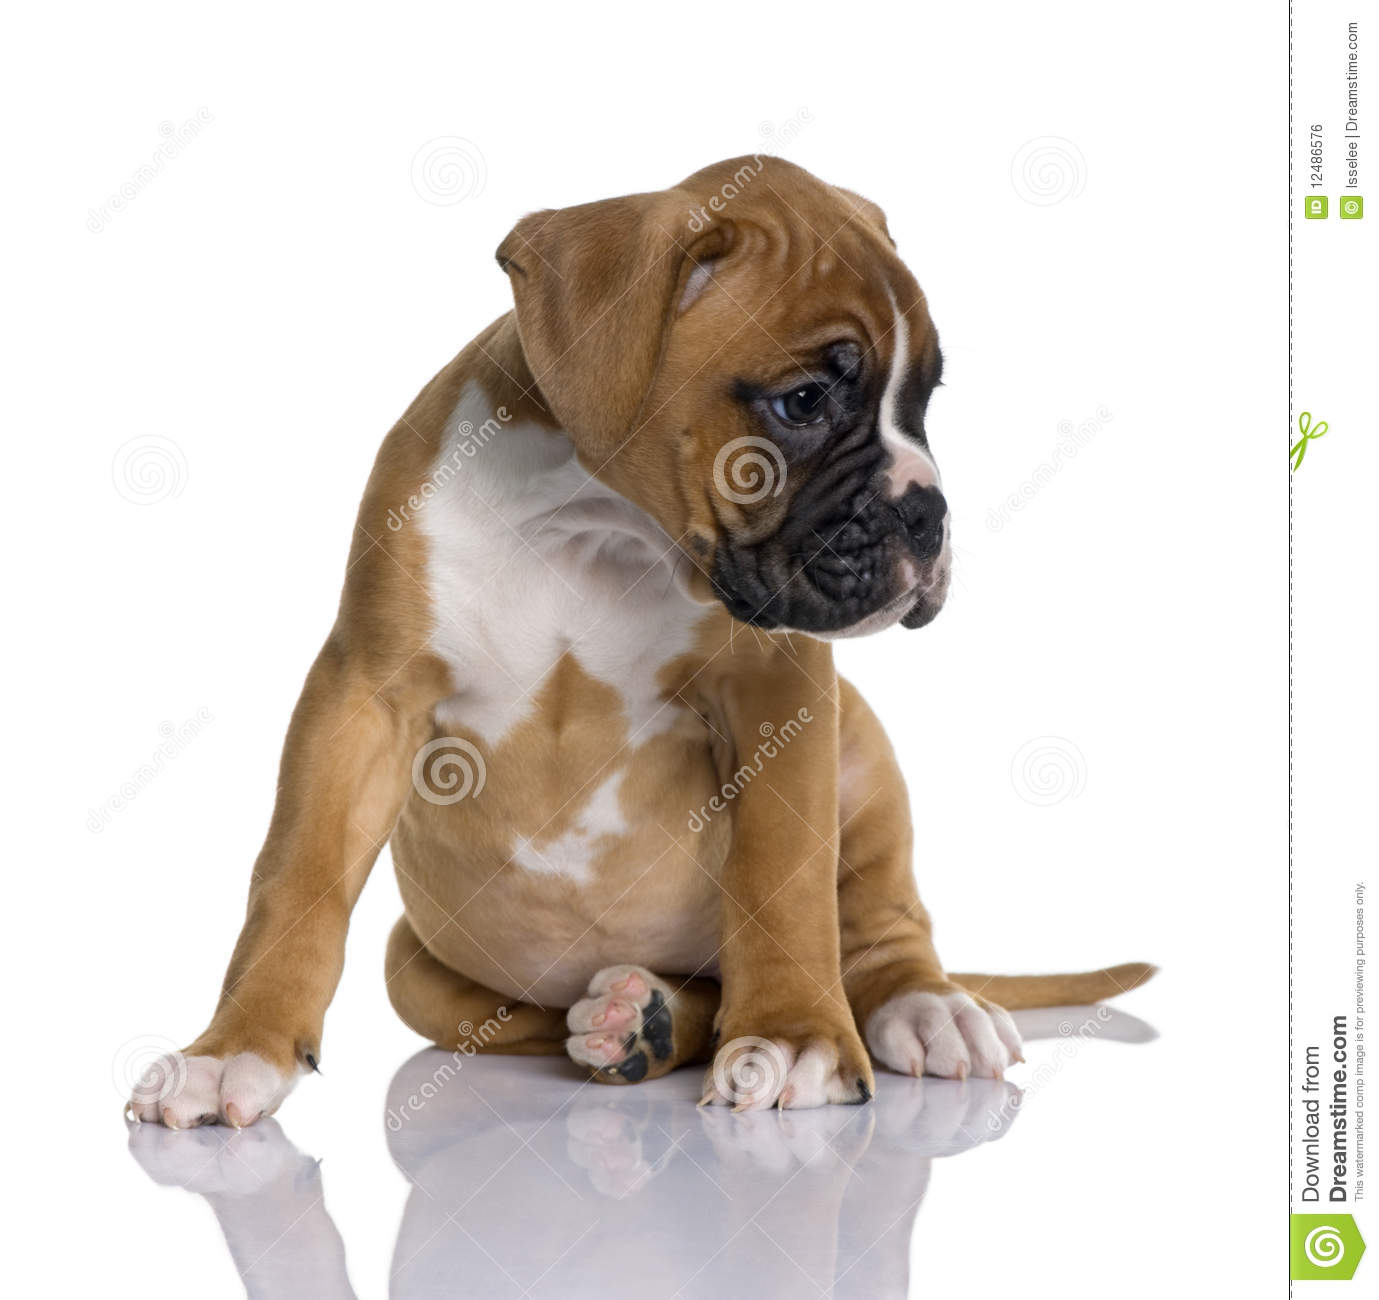 Puppy Boxer, 2 months old, sitting